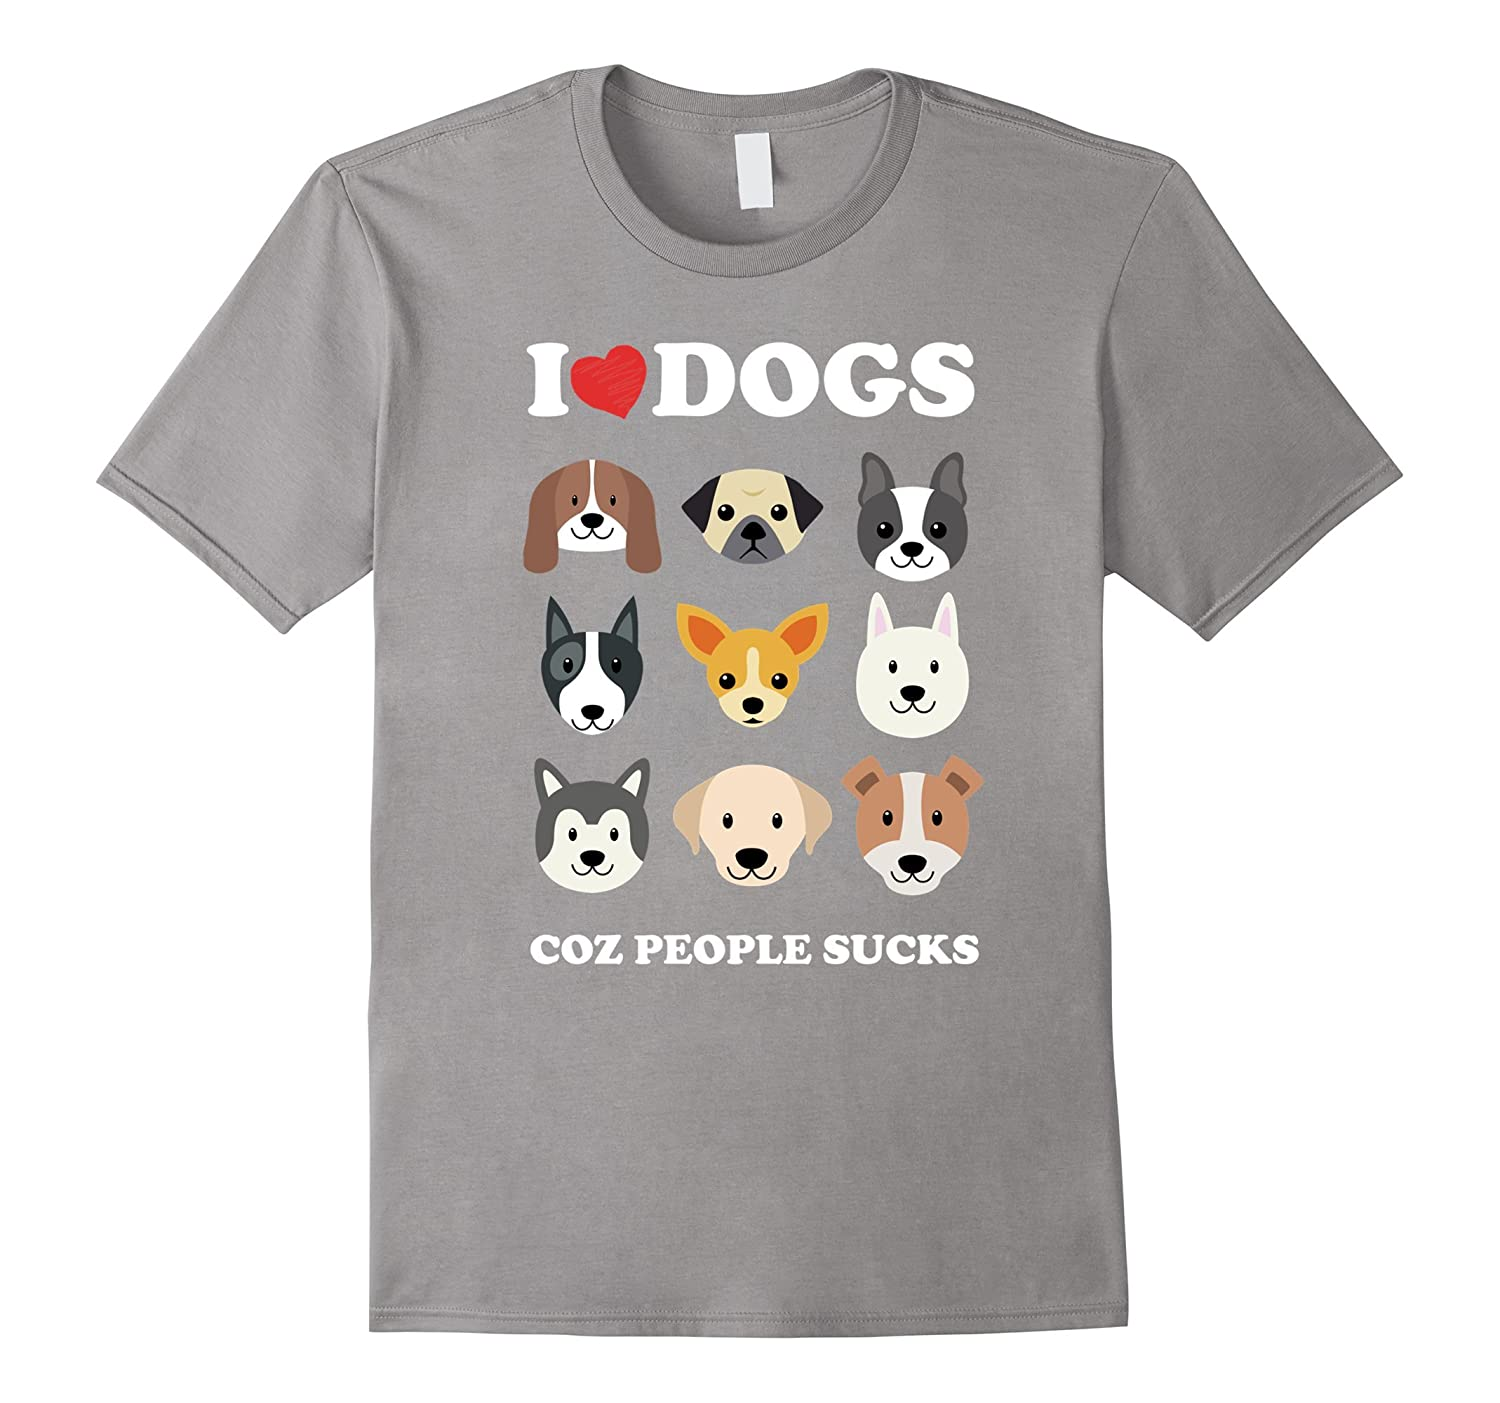 I love Dogs Tshirt – Dog Lovers Shirt – Dog Lover Tshirt ...